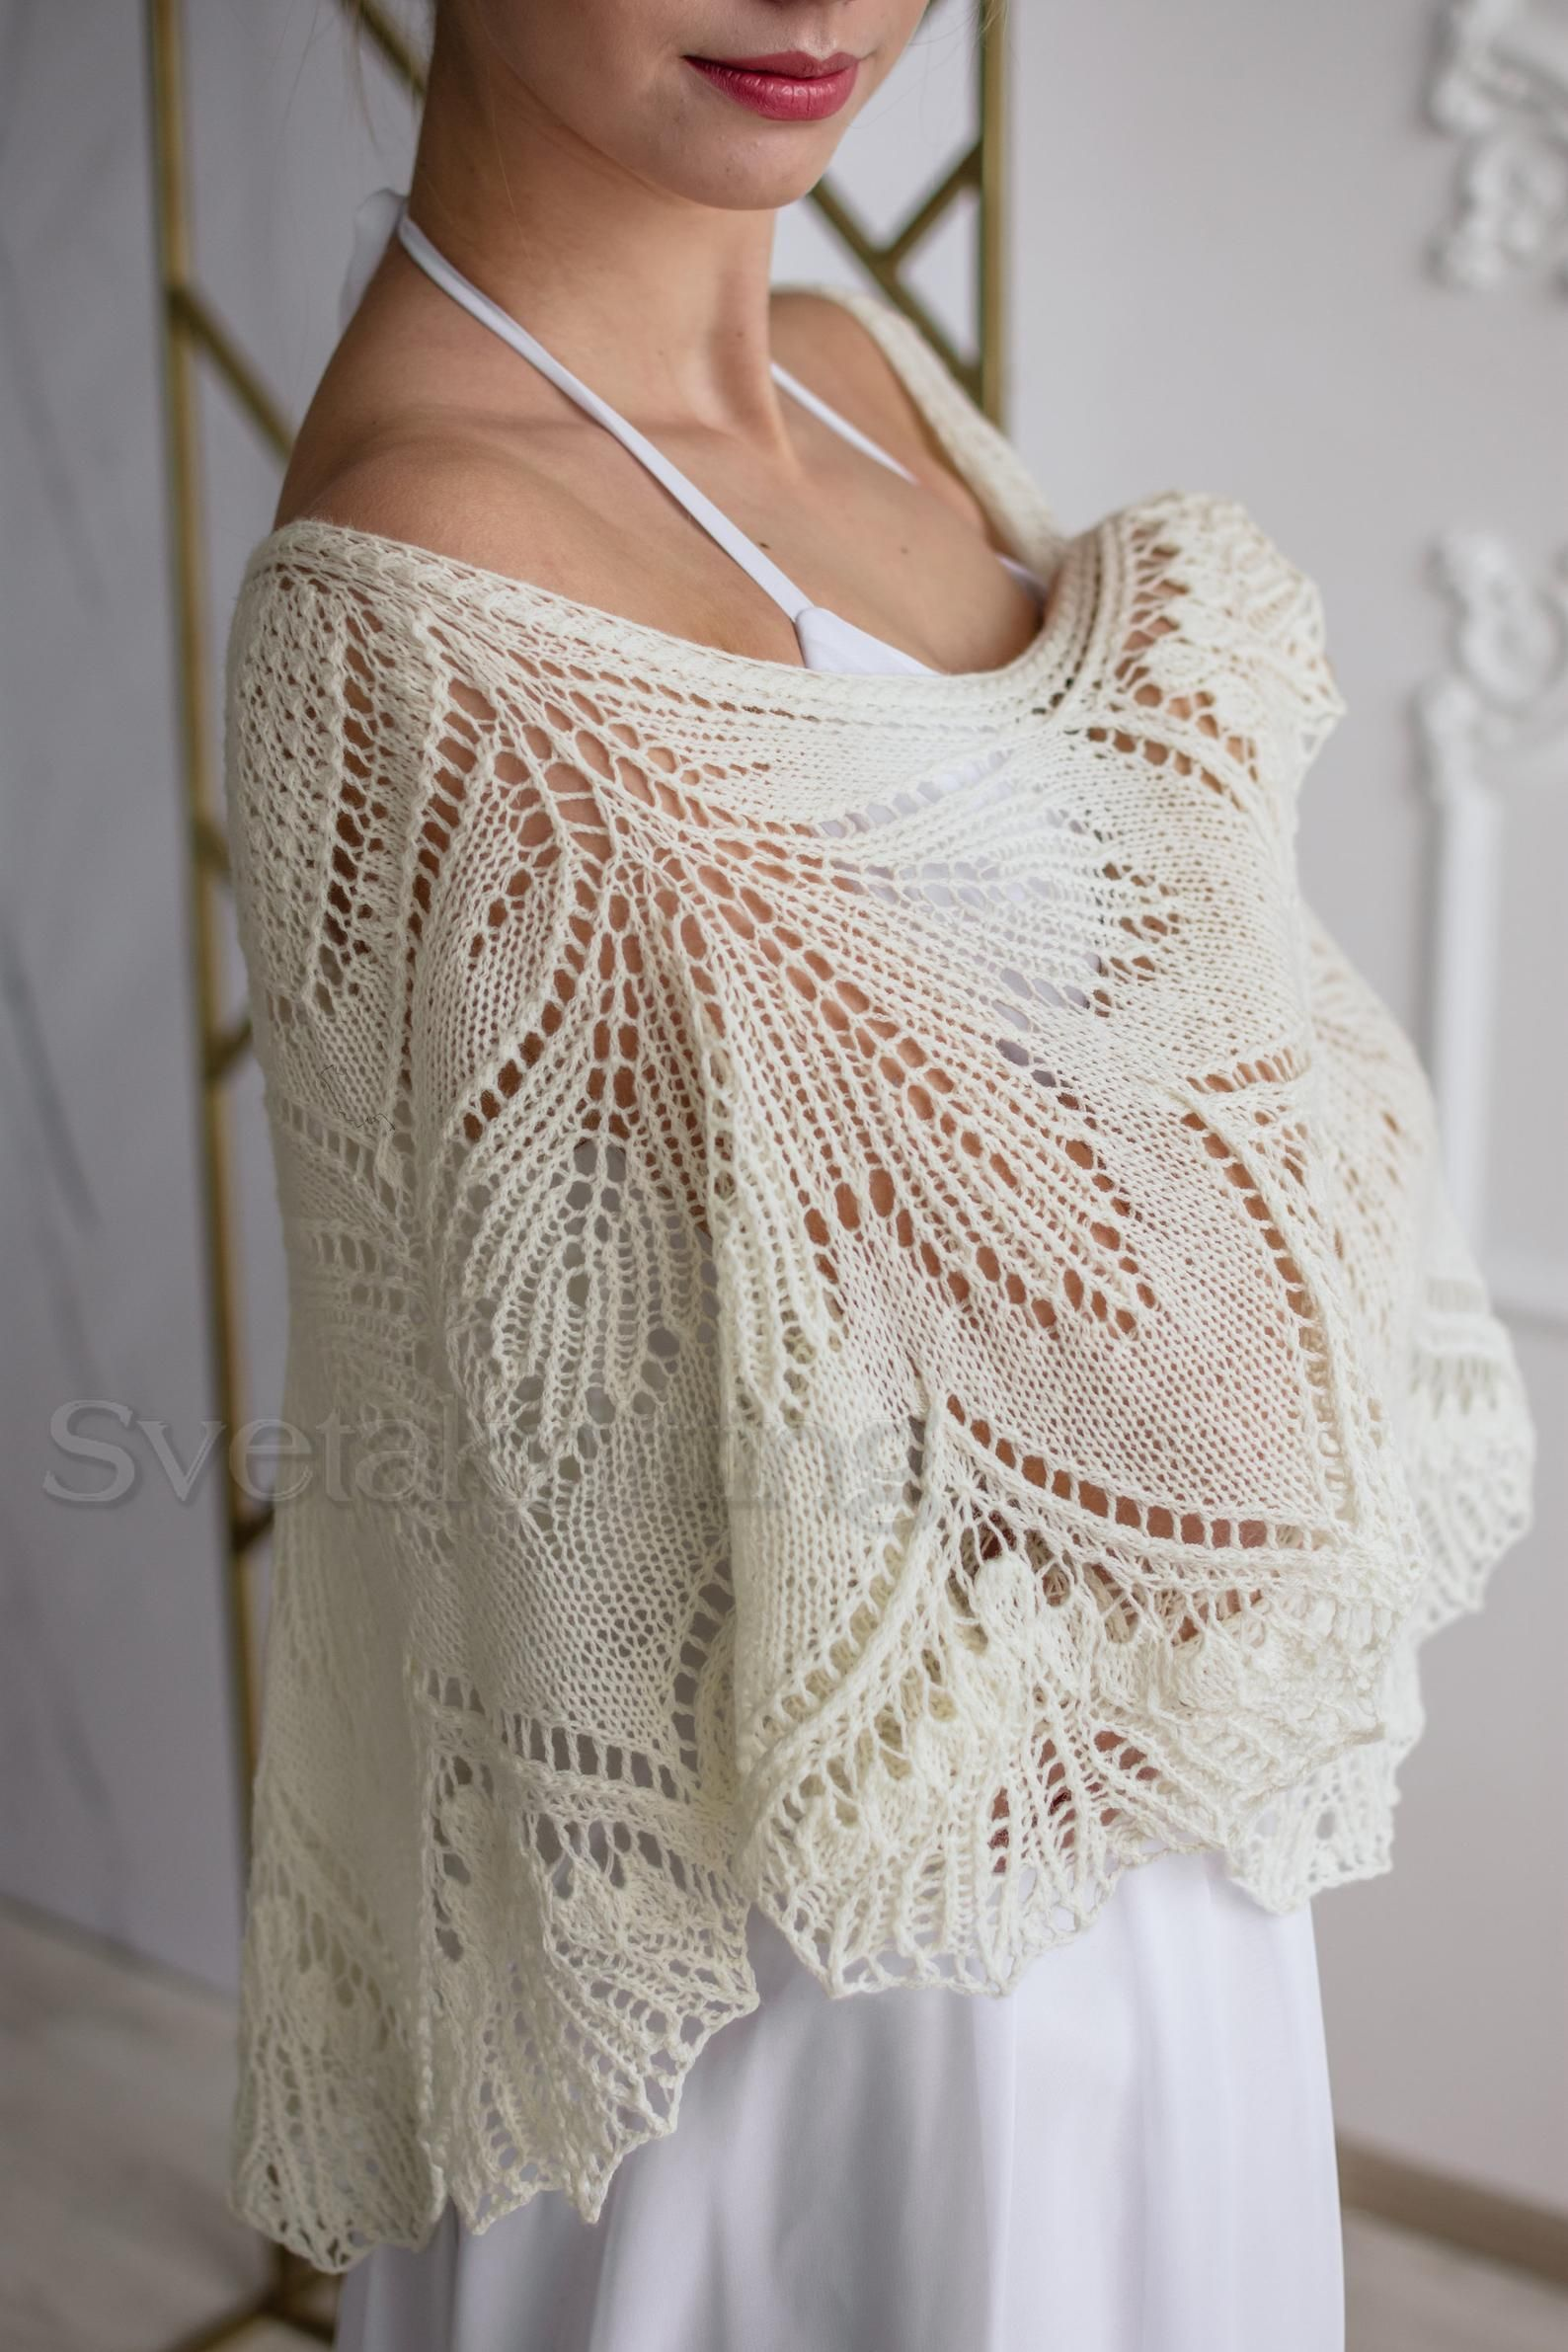 Hand Knitted Ivory Wedding Shawls And Wraps White Cape For Etsy In 2020 Shawls And Wraps Hand Knitting Wedding Shawl